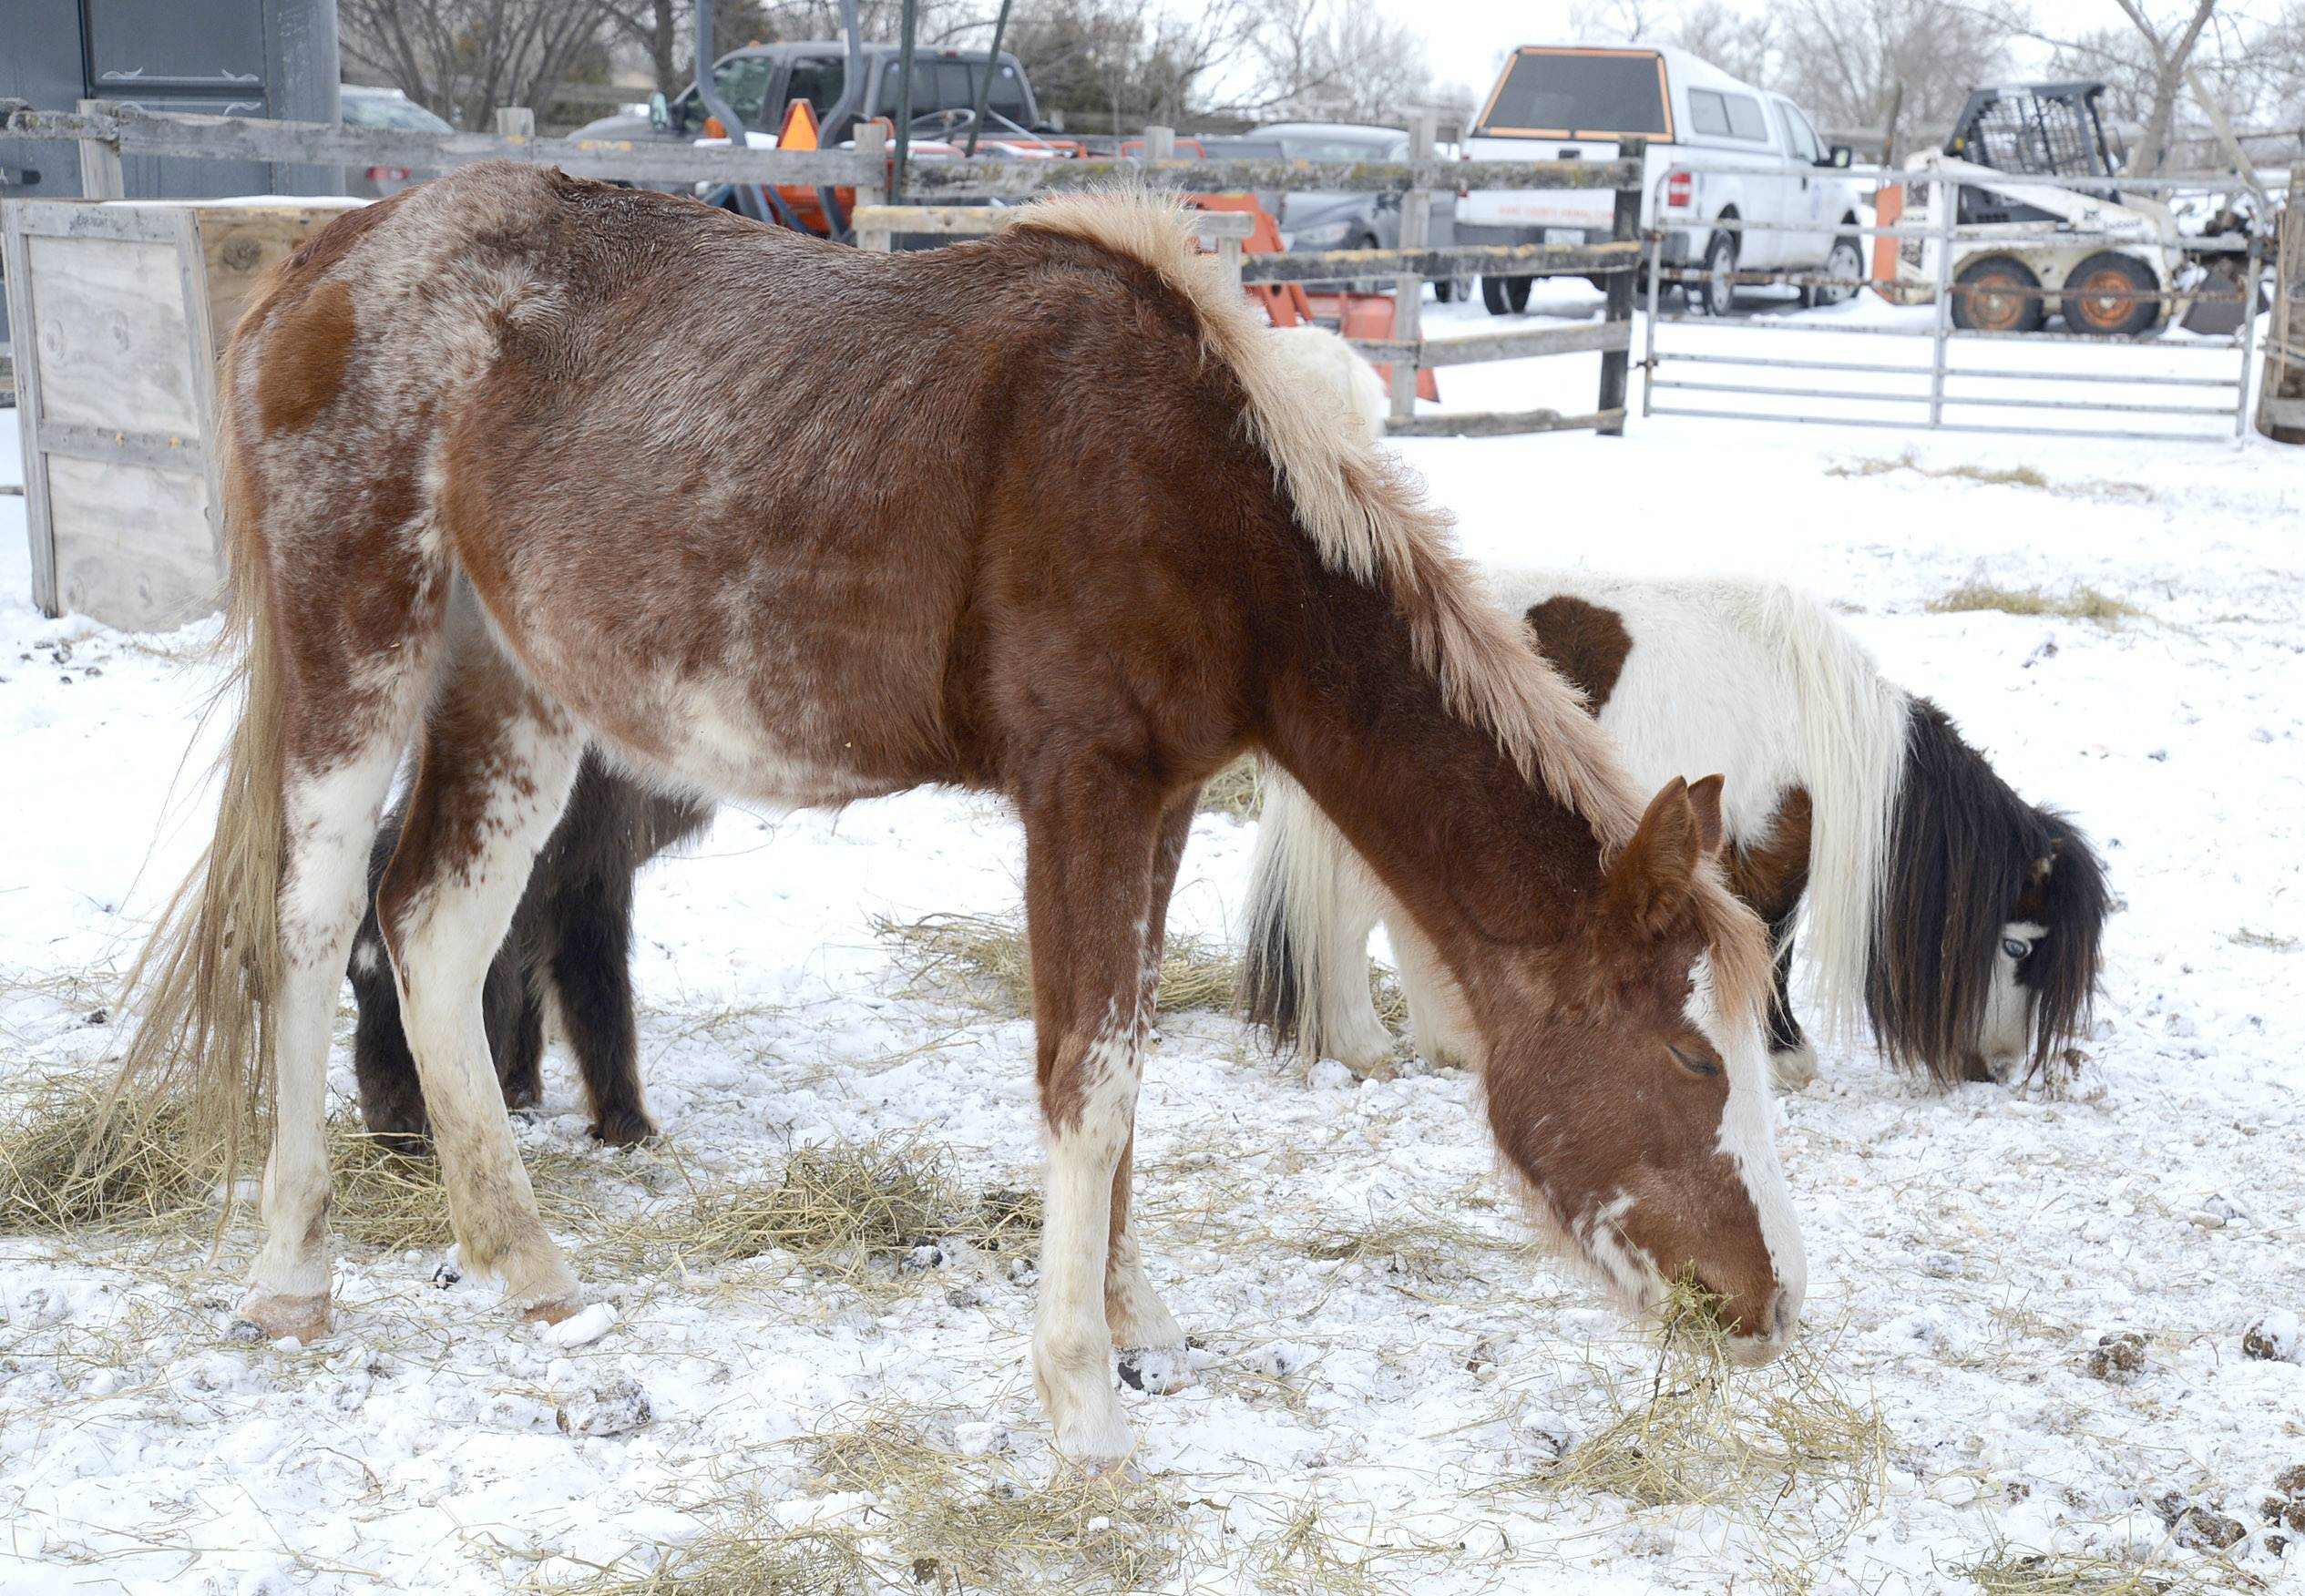 A thin horse feeds on hay March 5 after being seized from Elgin resident Stacy Fiebelkorn, who was charged with animal cruelty and neglect. Fiebelkorn has forfeited her horses by not posting a court-ordered $30,000 security for their care while she awaits trial.